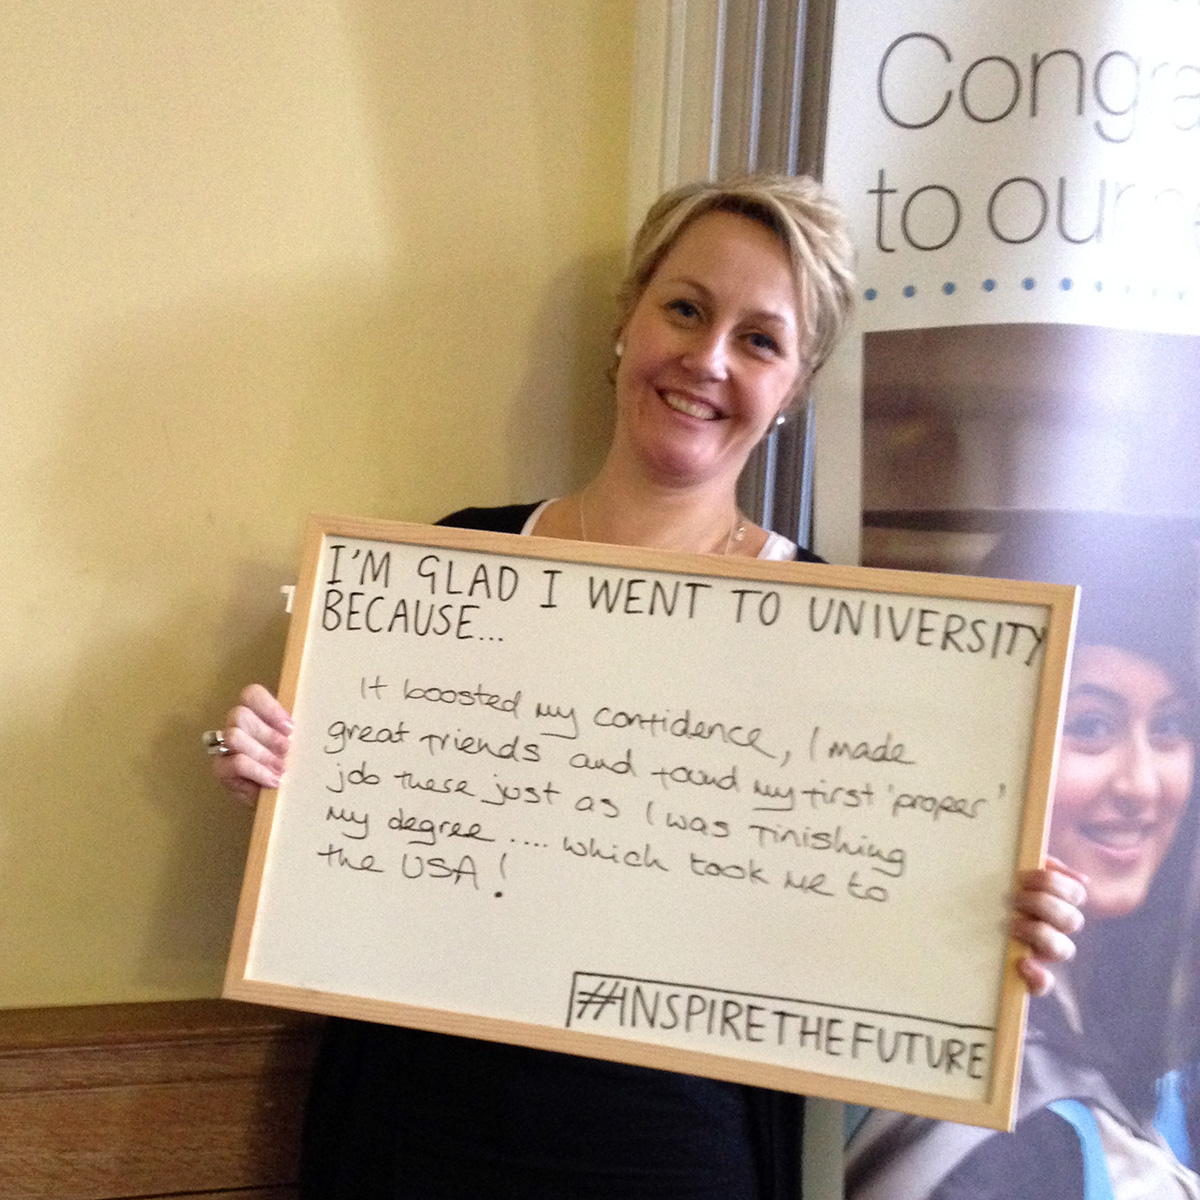 It boosted my confidence, I made great friends and found my first proper 'job' just as I was finishing my degree... which took me to the USA! (Anne Keetch)